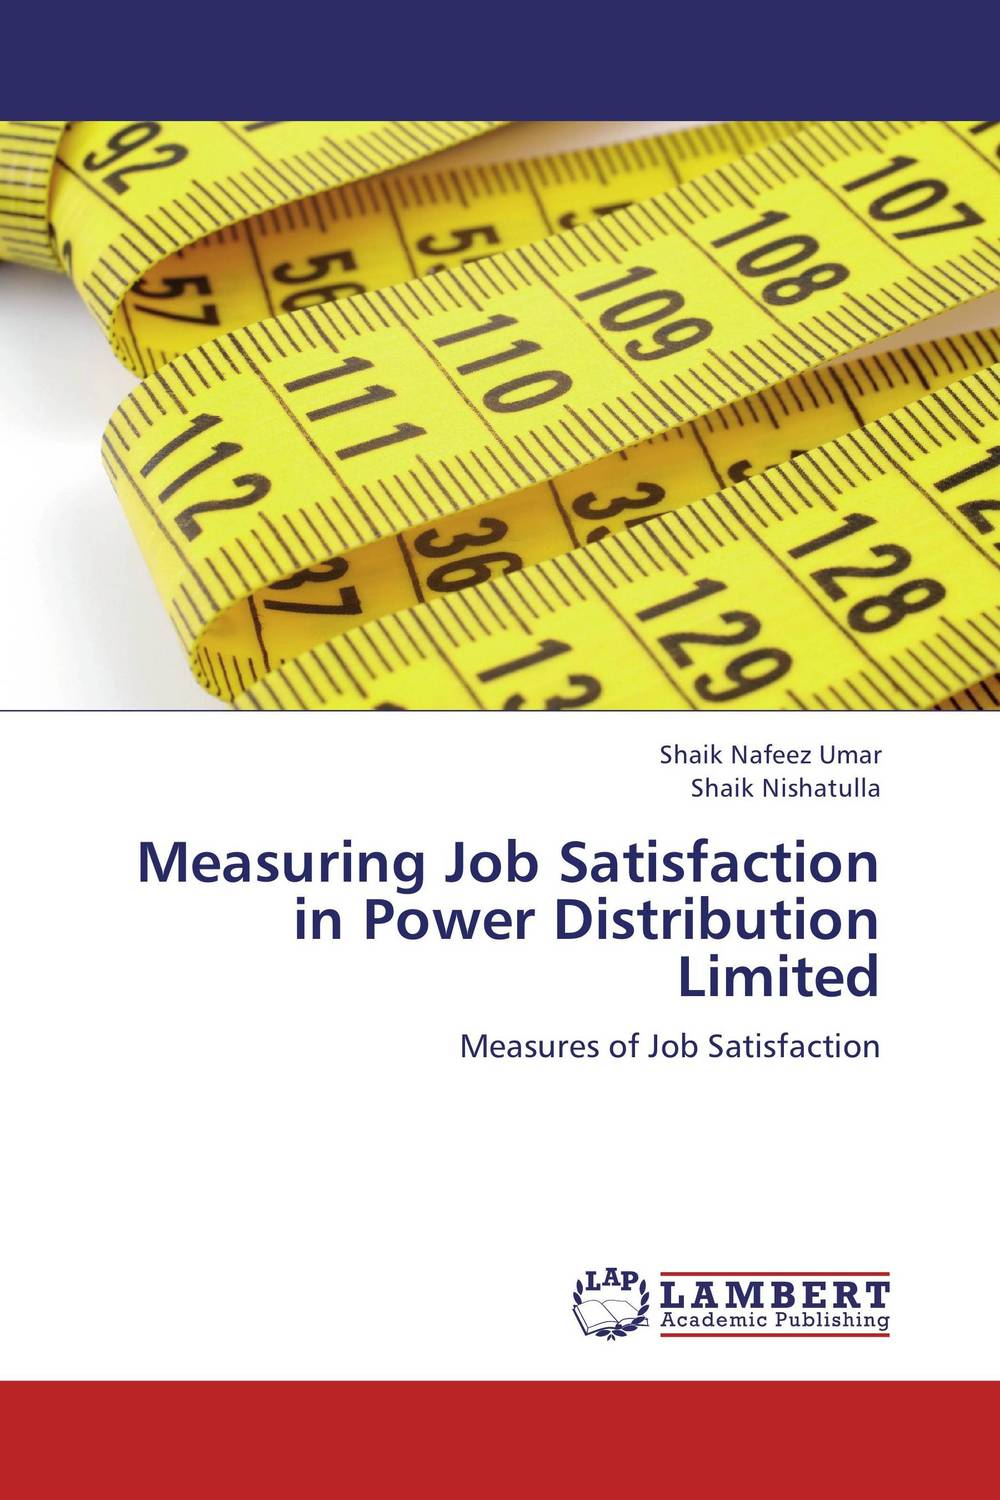 Measuring Job Satisfaction in Power Distribution Limited